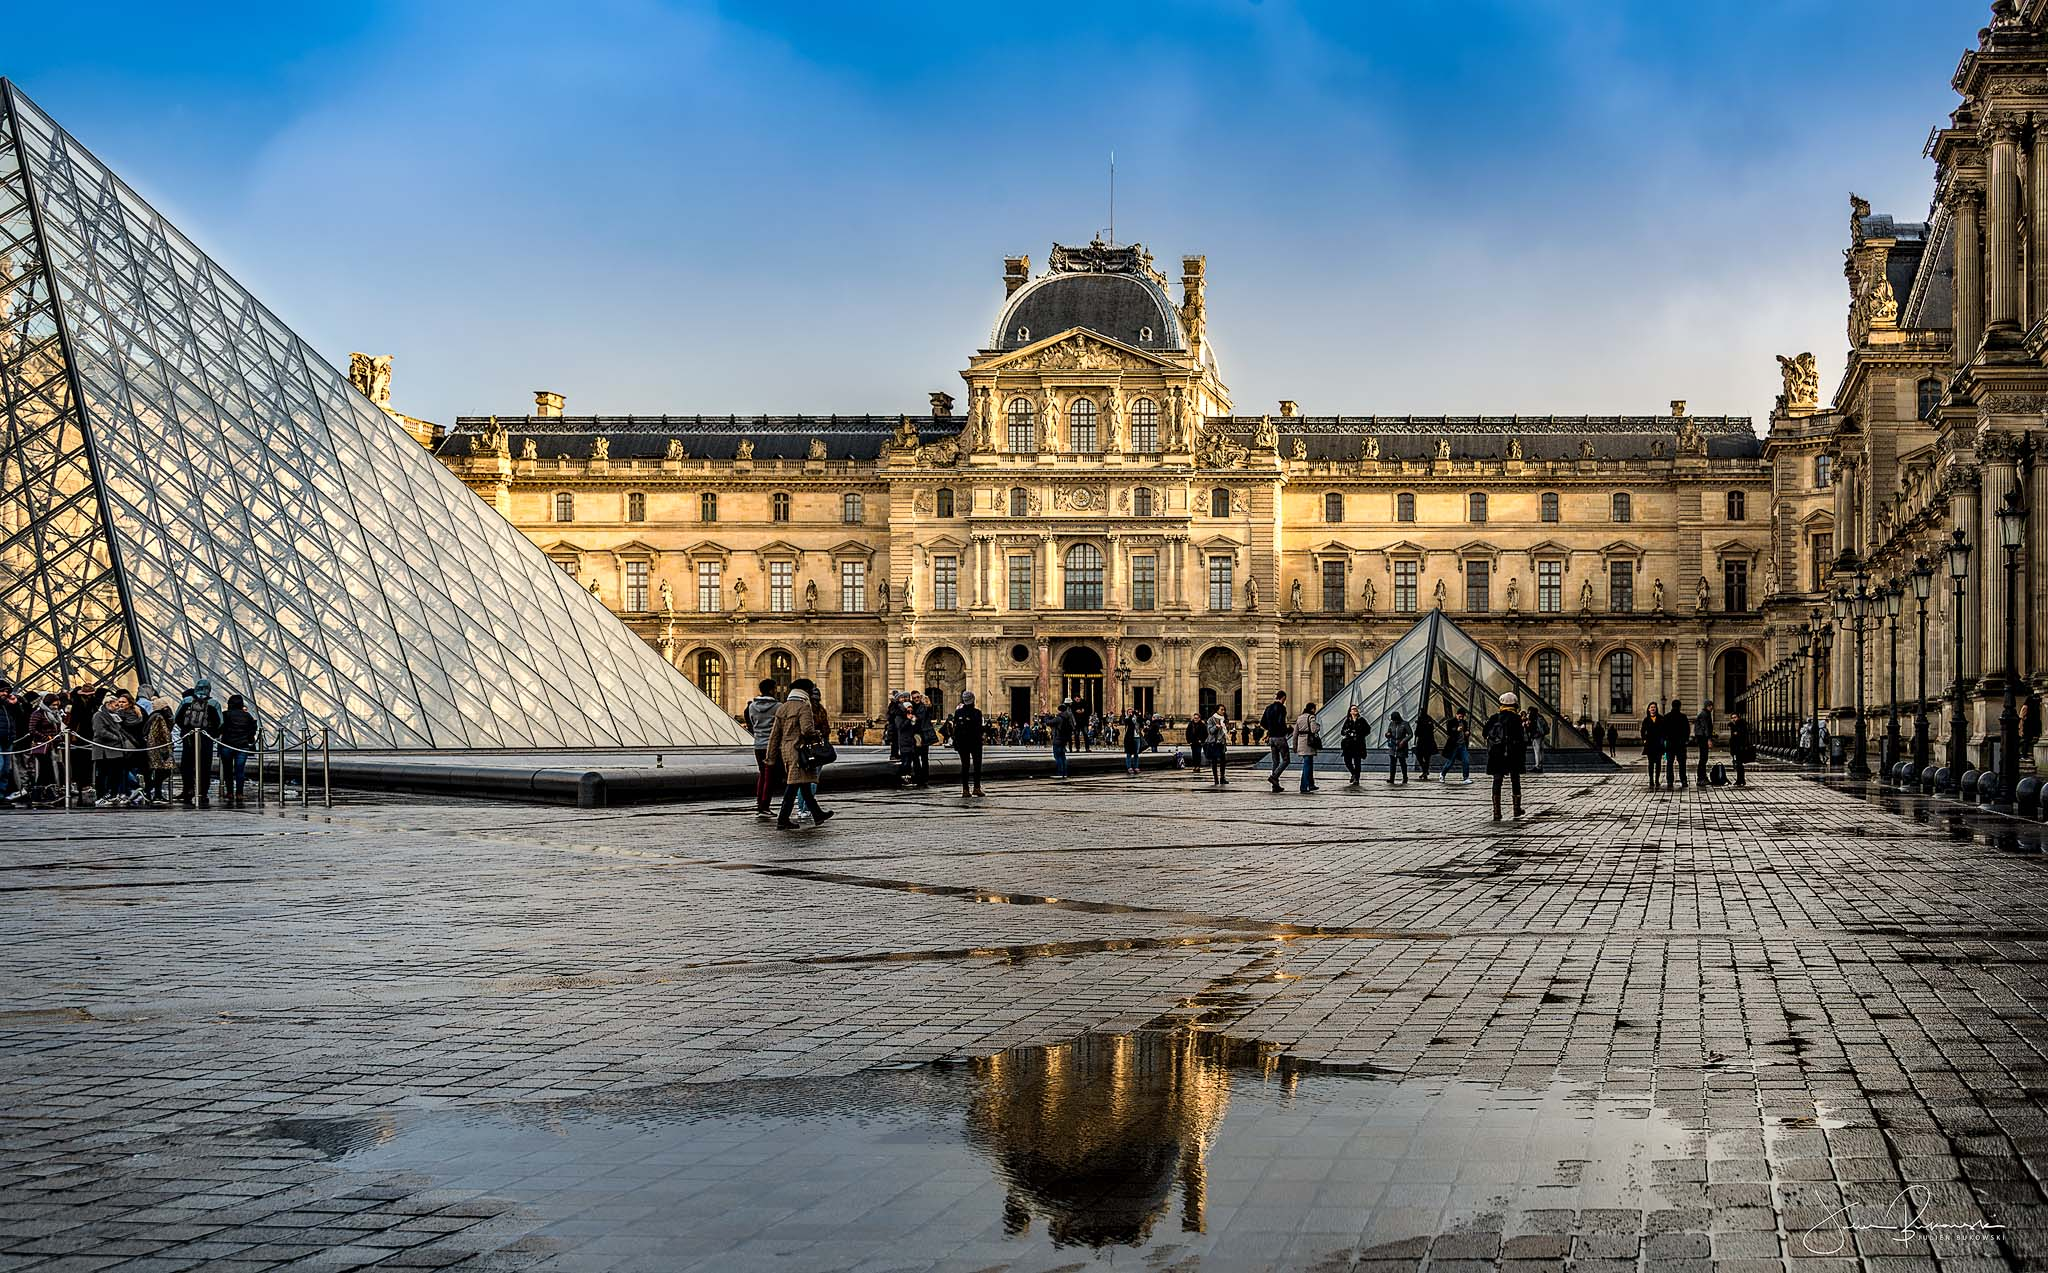 Le Louvre (Paris)